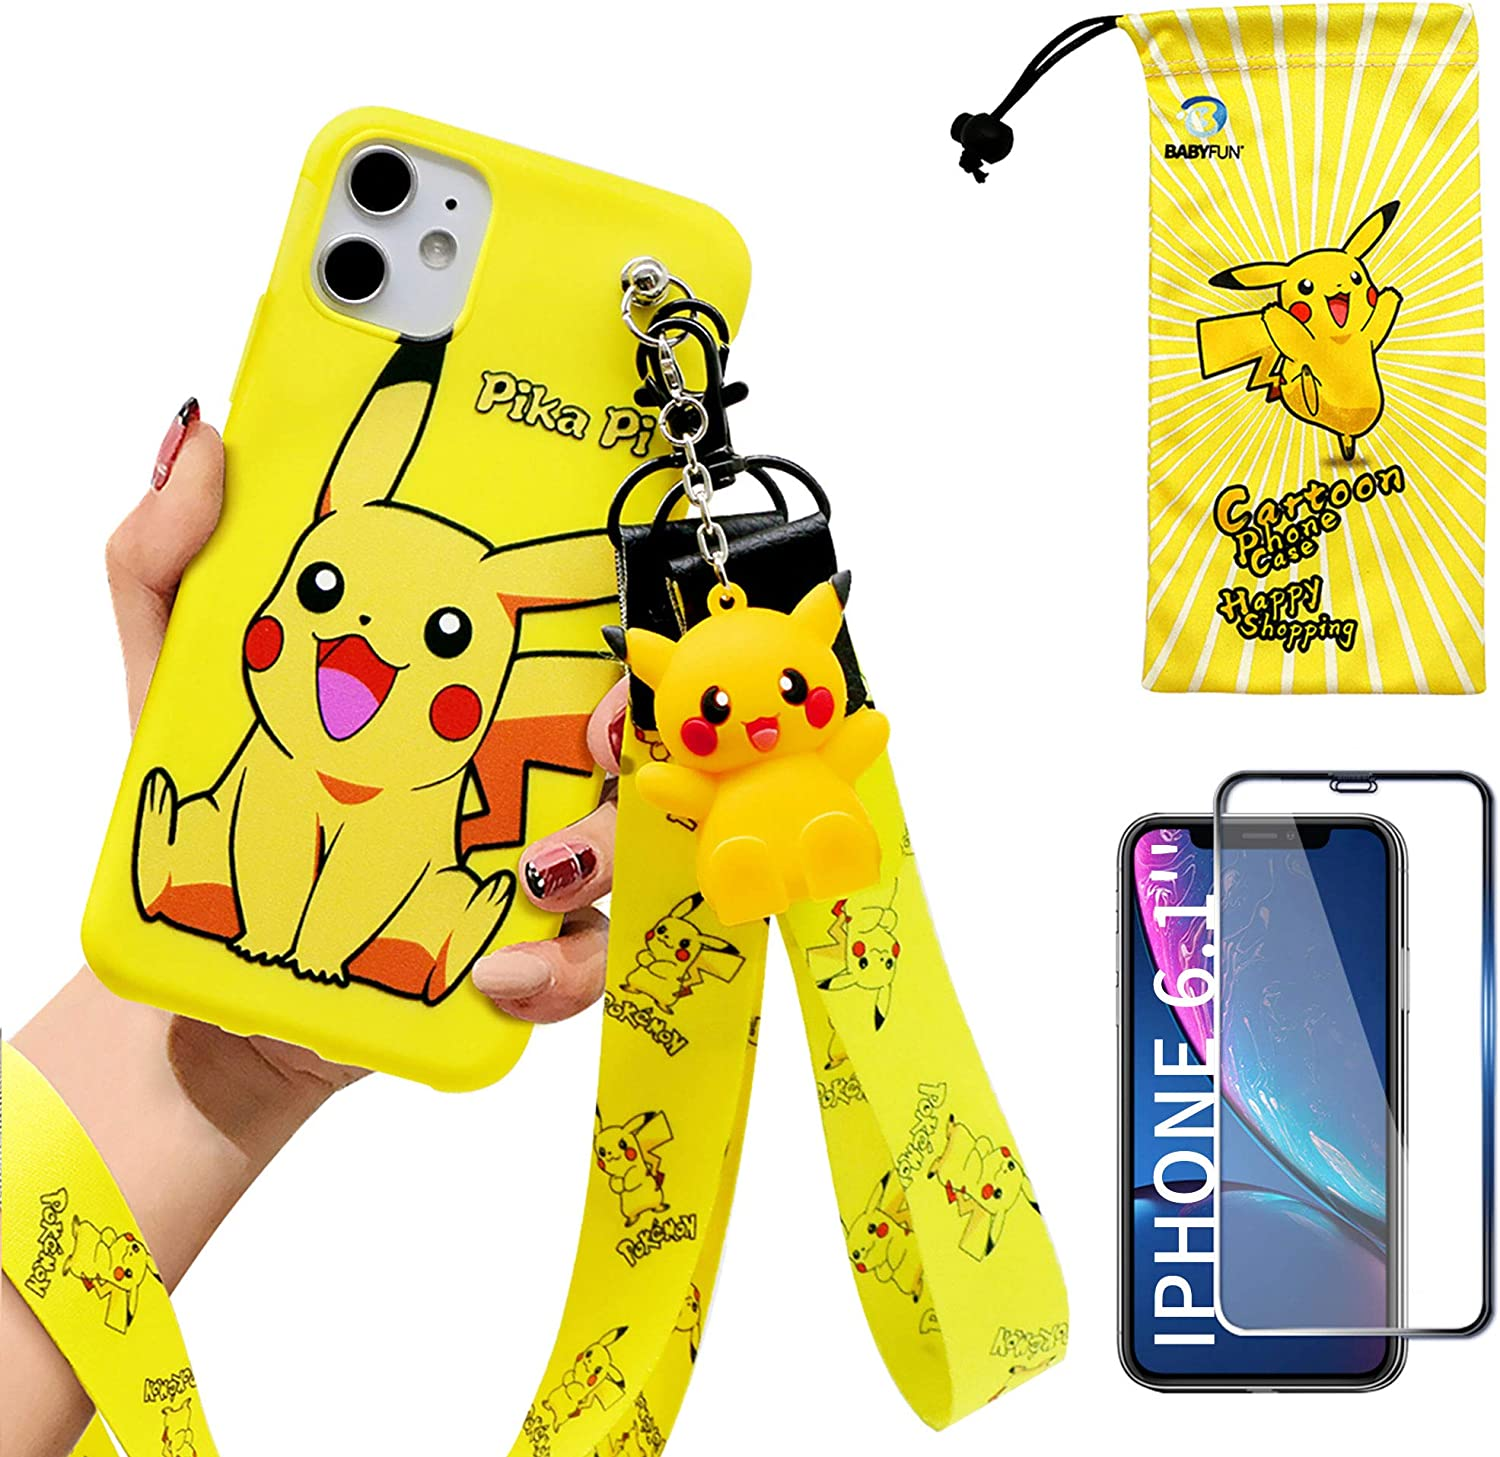 Compatible with iPhone 12 Case with HD Screen Protector, 2 Lanyard, 1 Cell Phone Stand, 1 Phone Storage Bag, Kawaii Pikachu Cartoon 3D Character Silicone Cover for iPhone 12 6.1